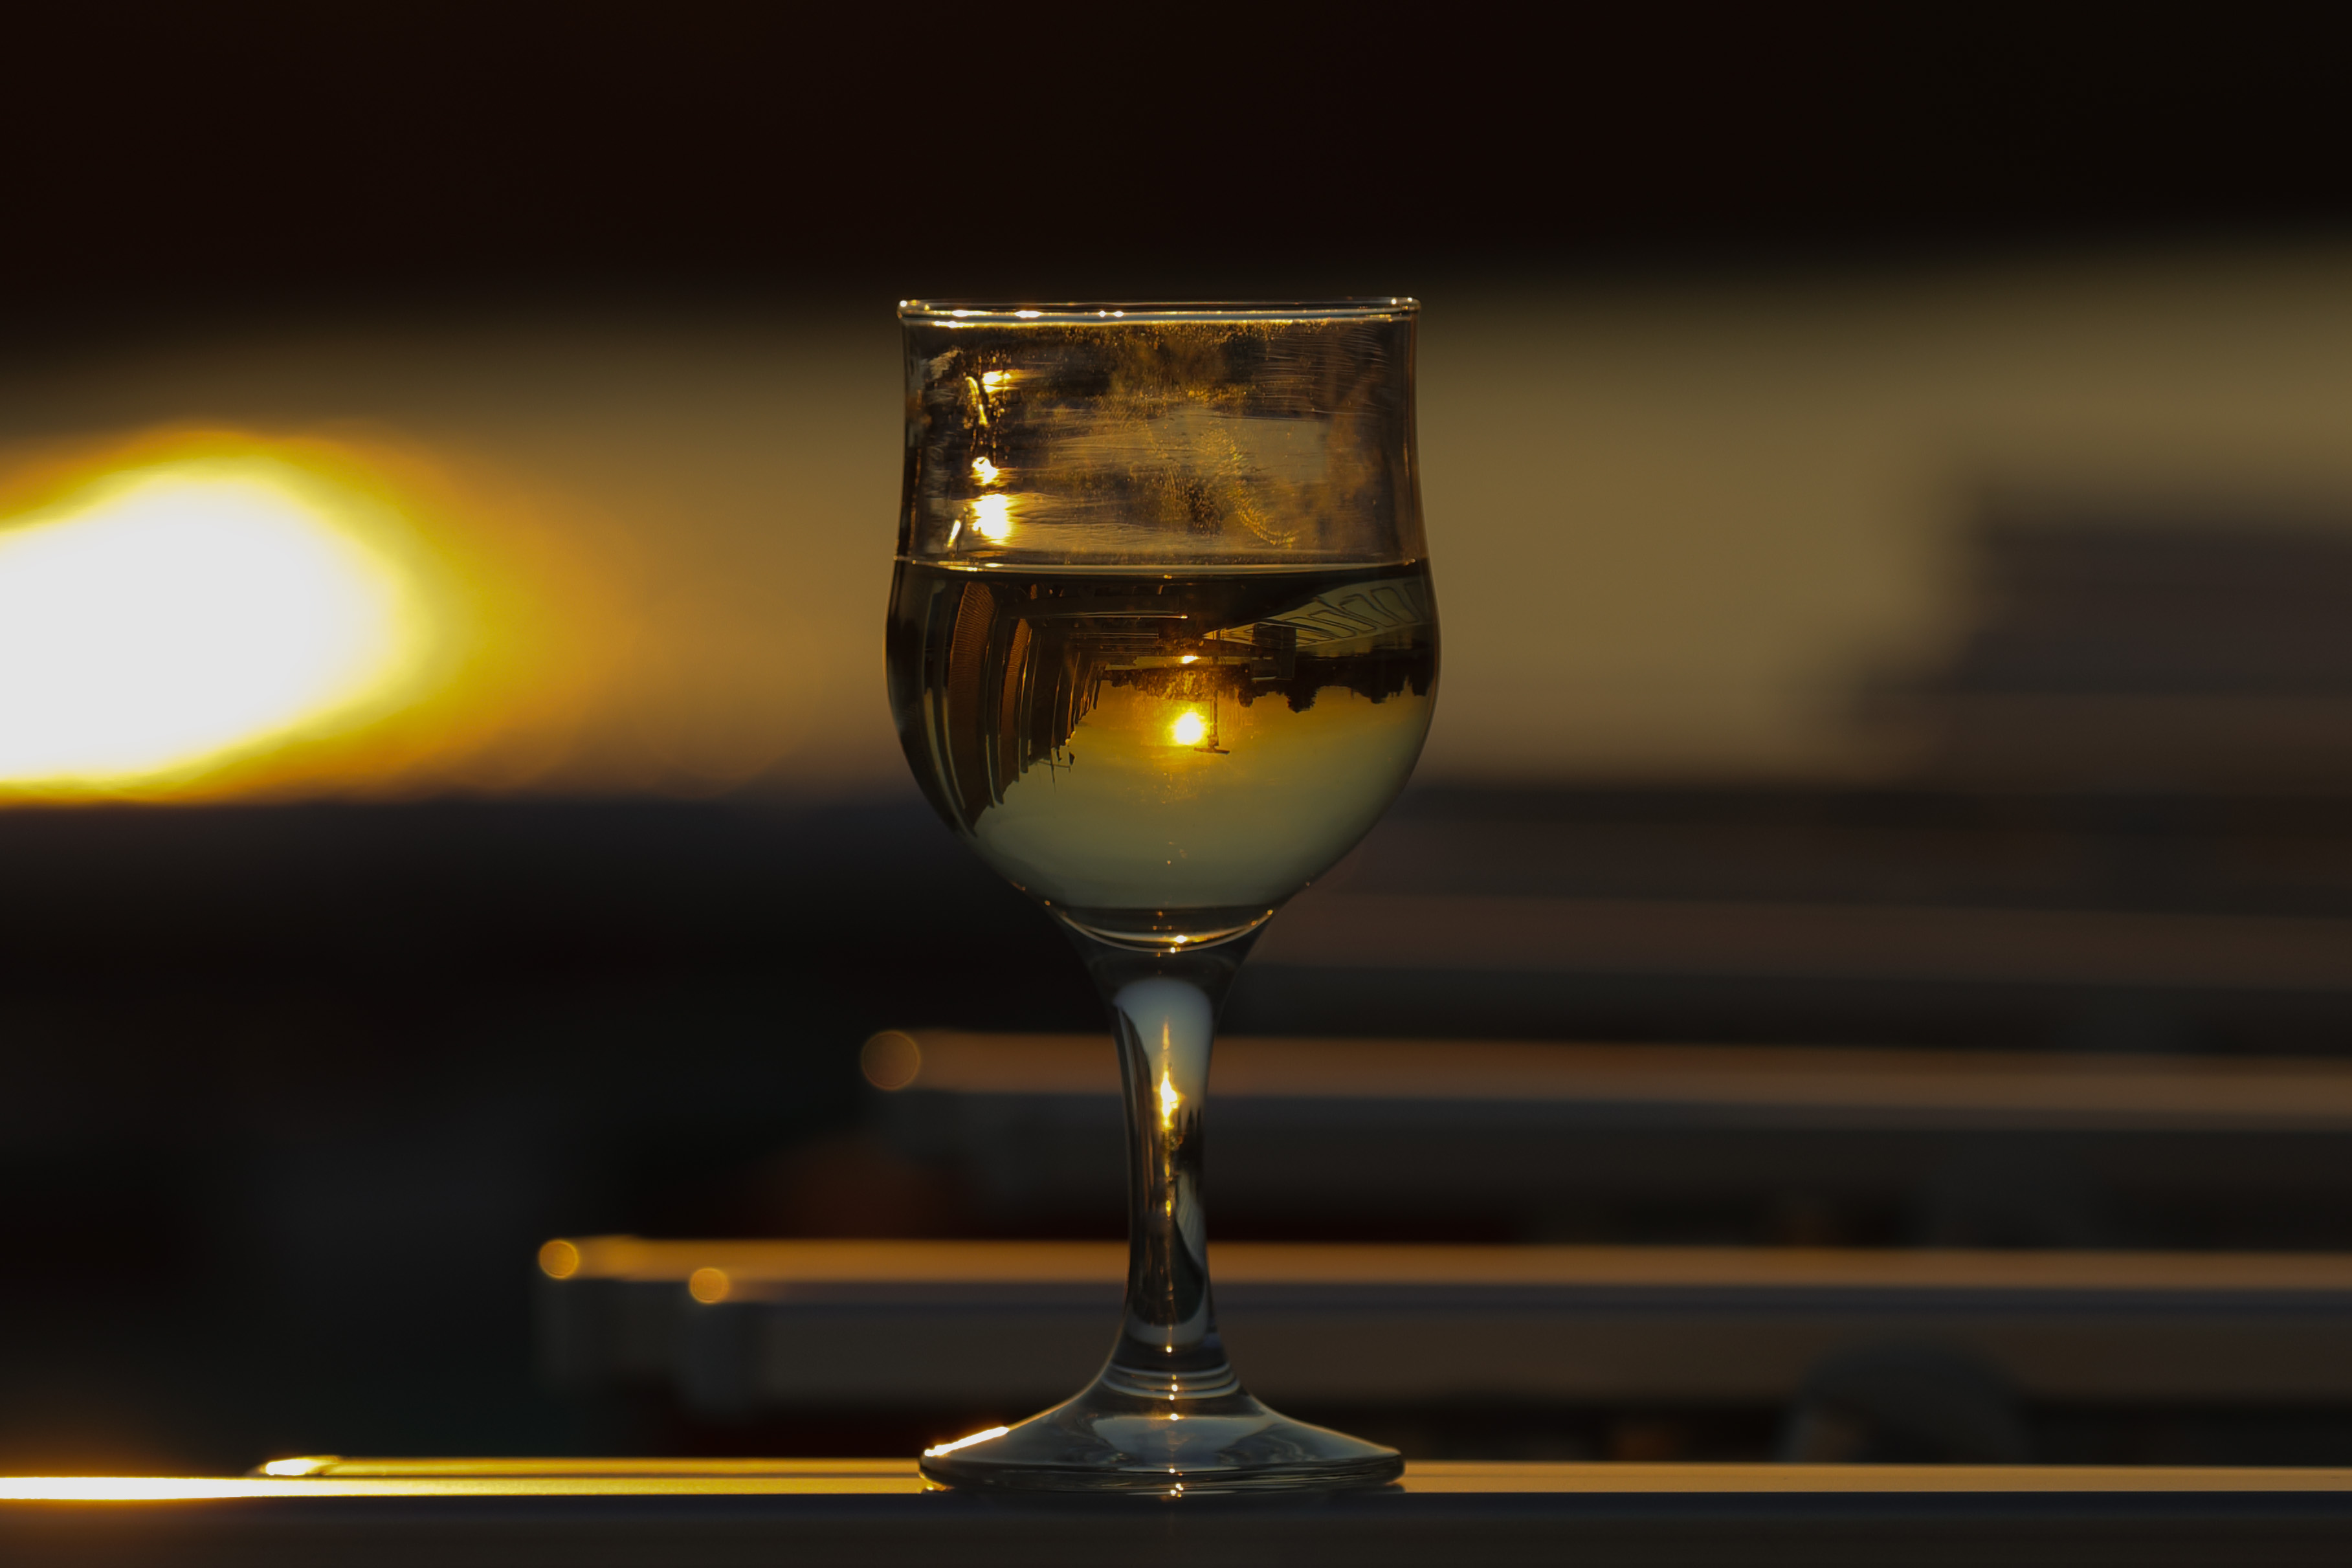 574B7185_c2.jpg - Sunset in a glass of wine